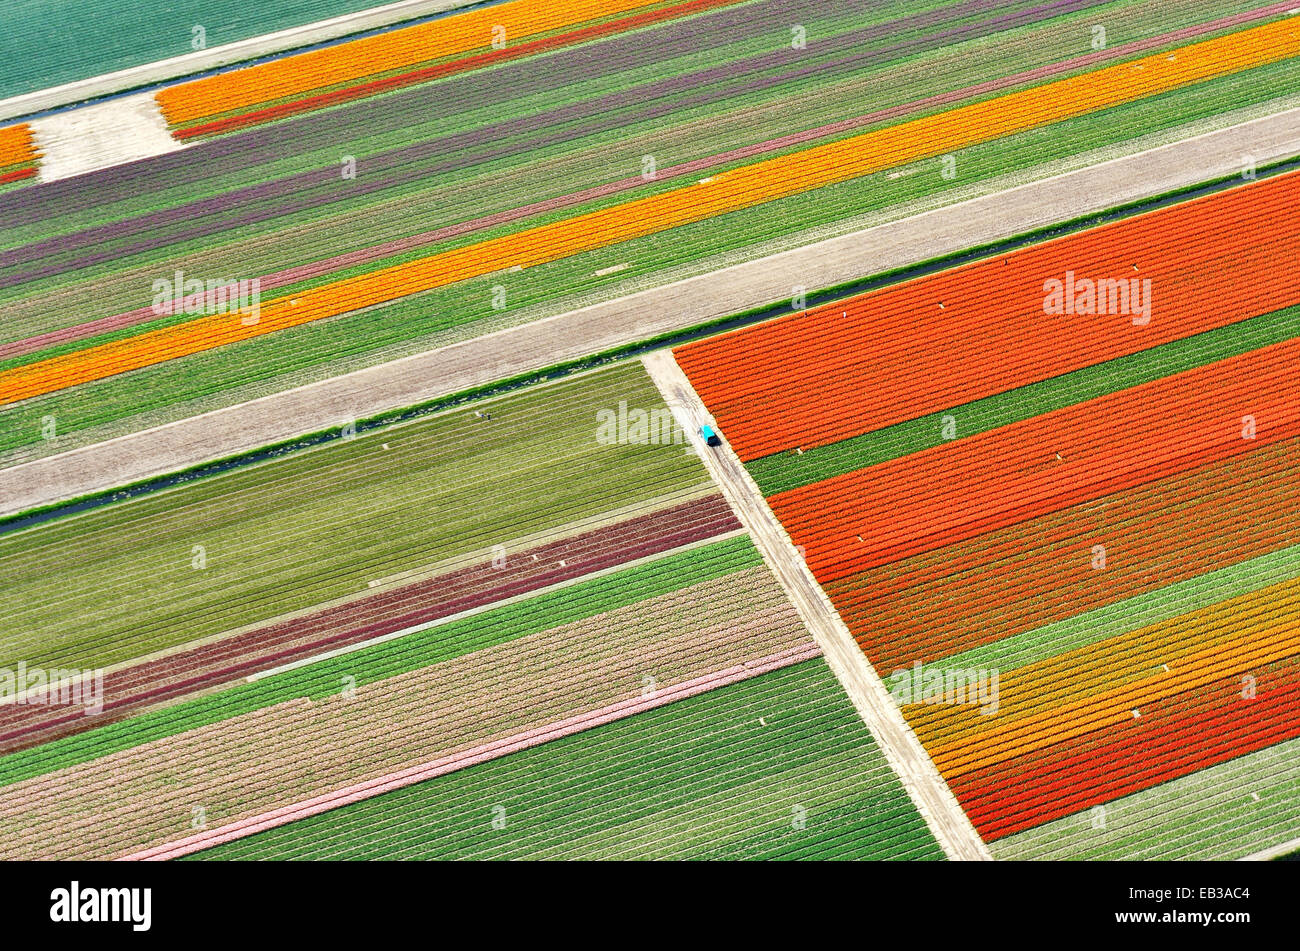 Netherlands, North Holland, Aerial view of tulip fields with turquoise van - Stock Image